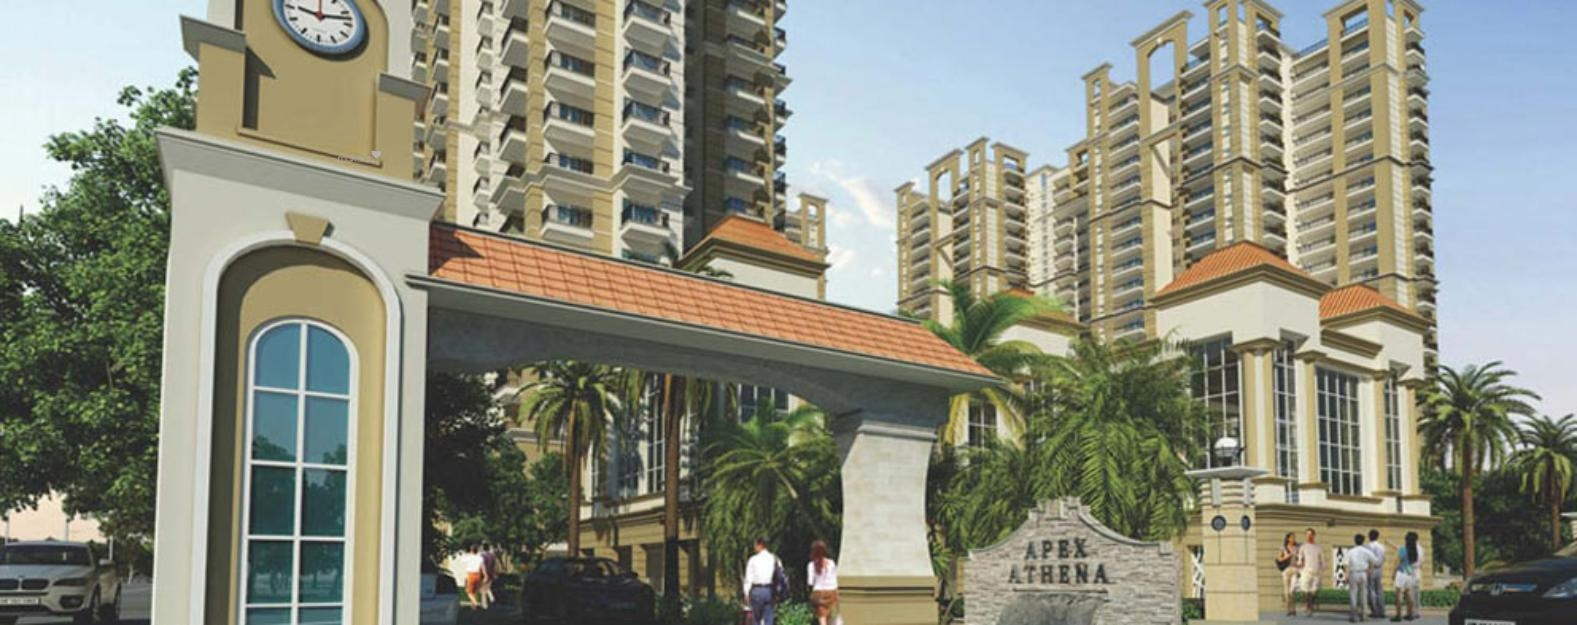 1295 sq ft 2BHK 2BHK+2T (1,295 sq ft) + Study Room Property By Ajmani Estates In Athena, Sector 75